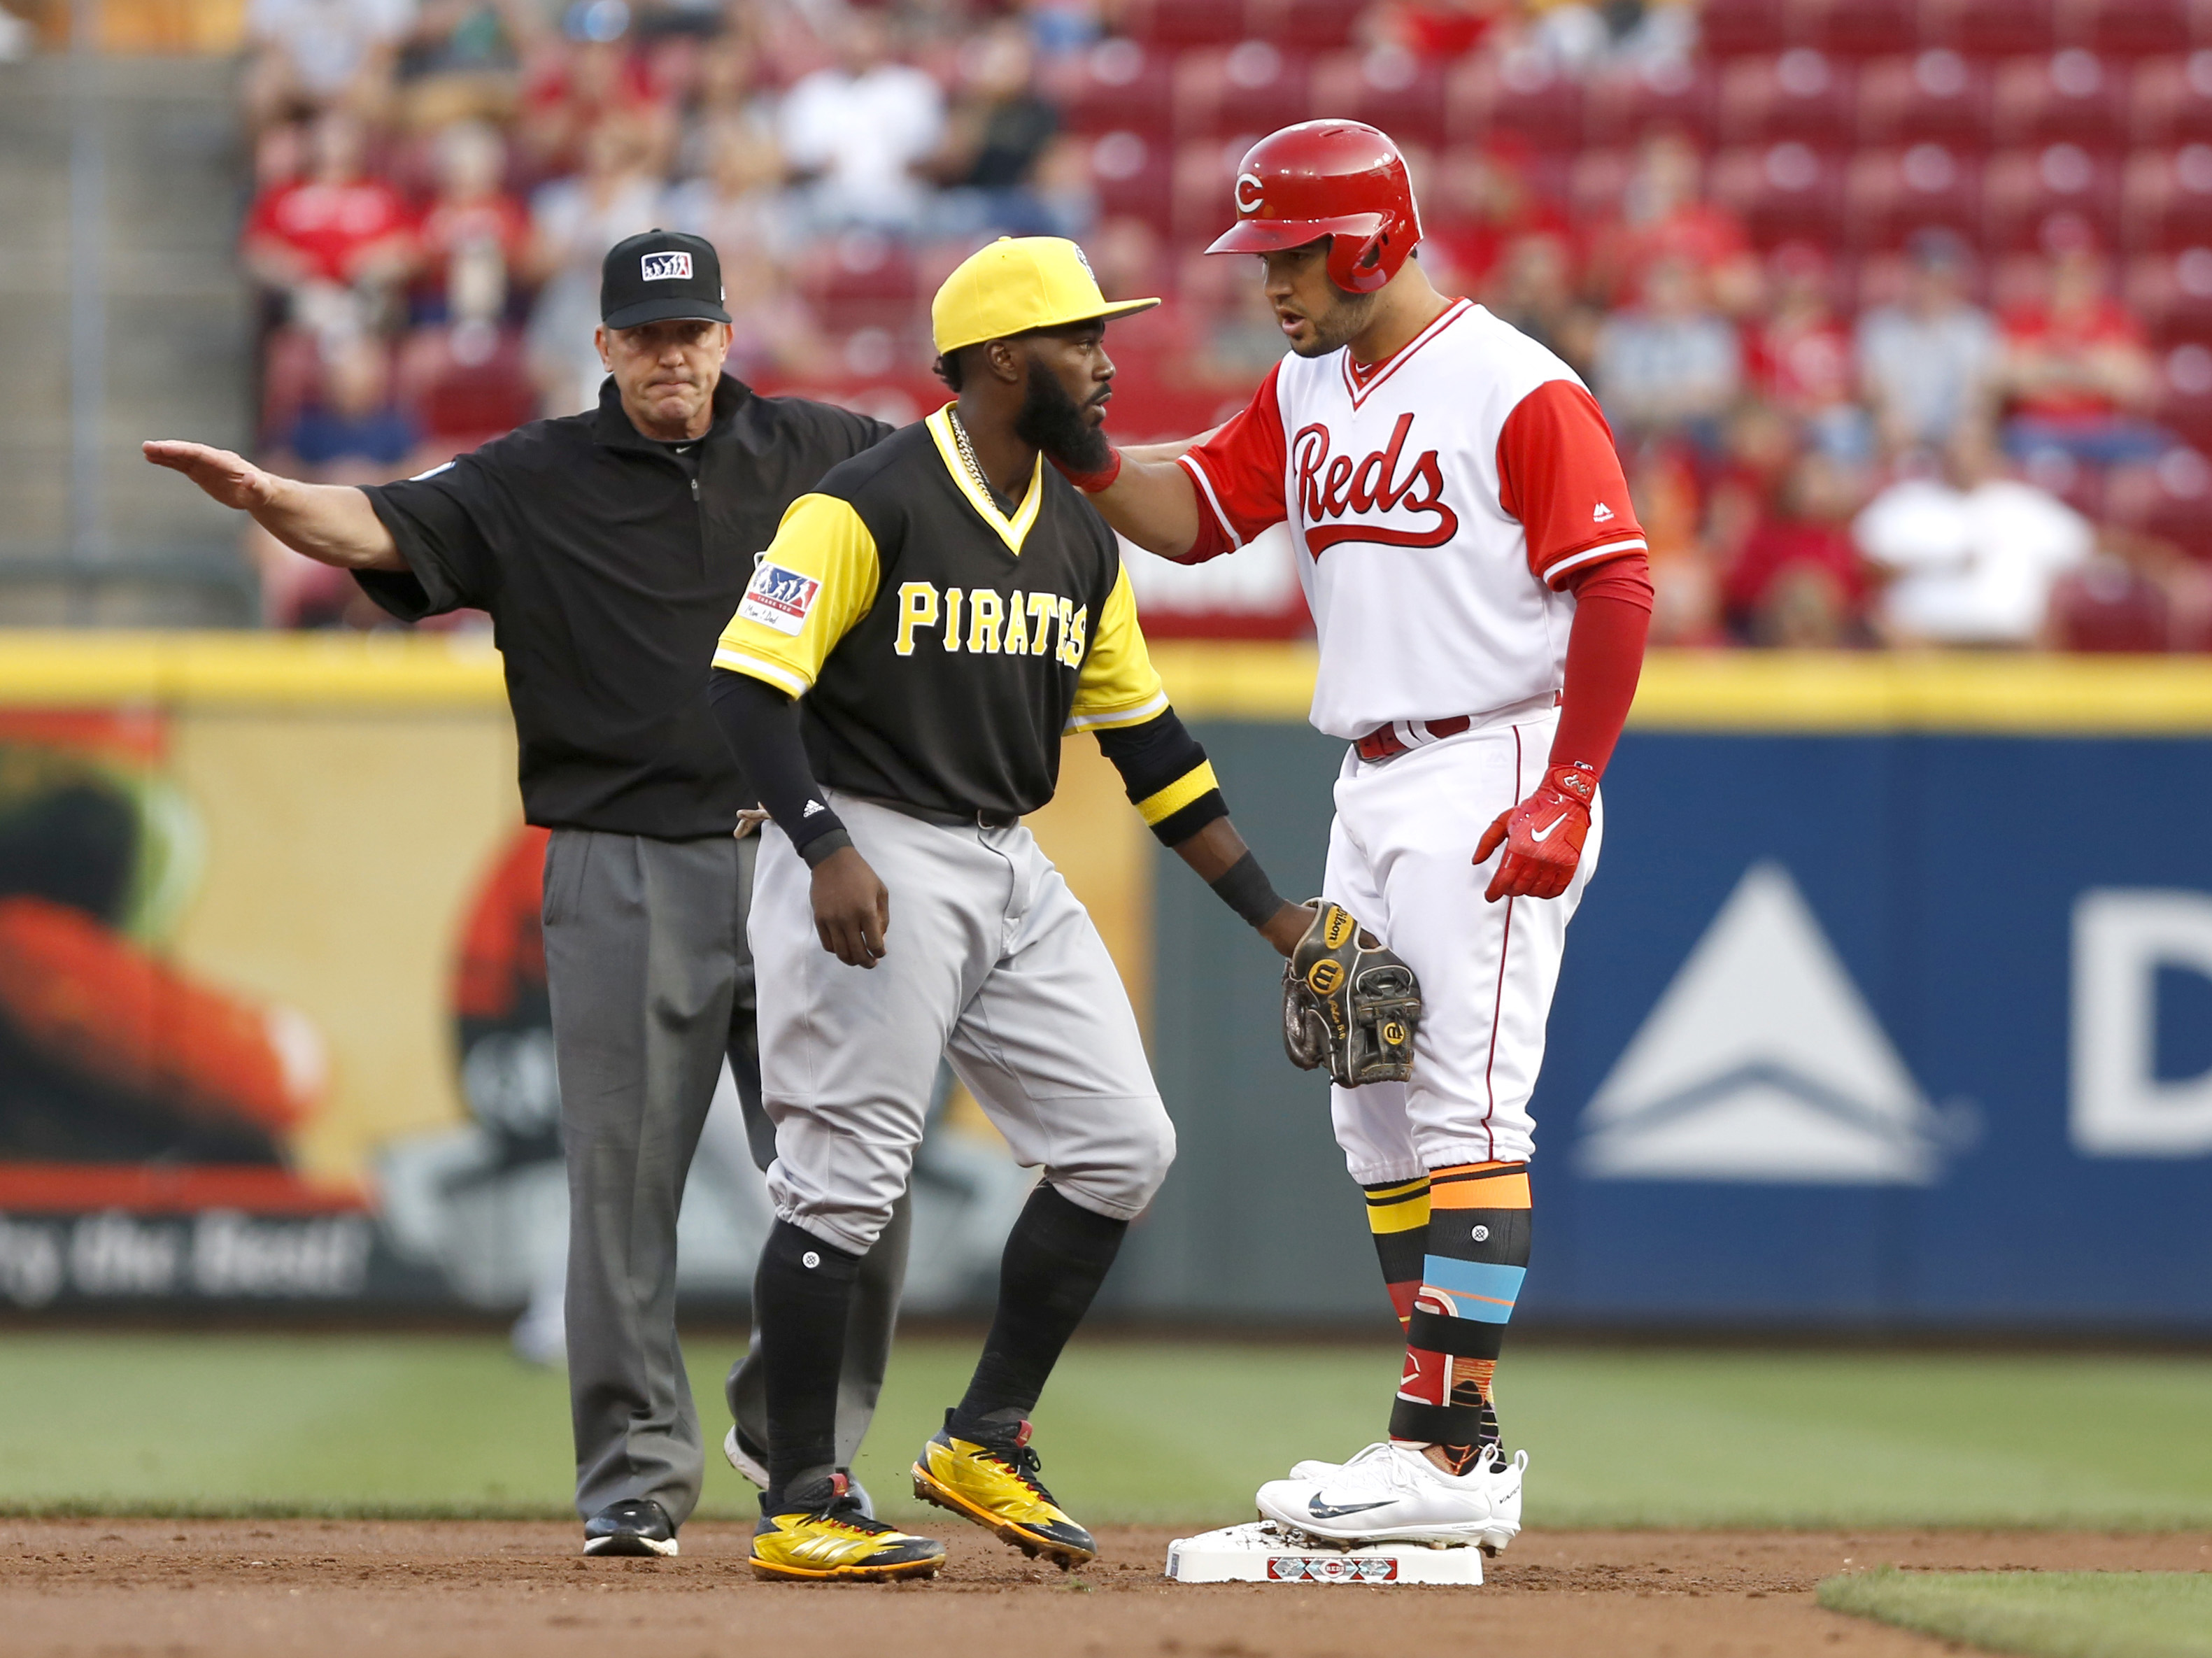 Report: New York Mets Have Contacted Pittsburgh Pirates About Josh Harrison Trade